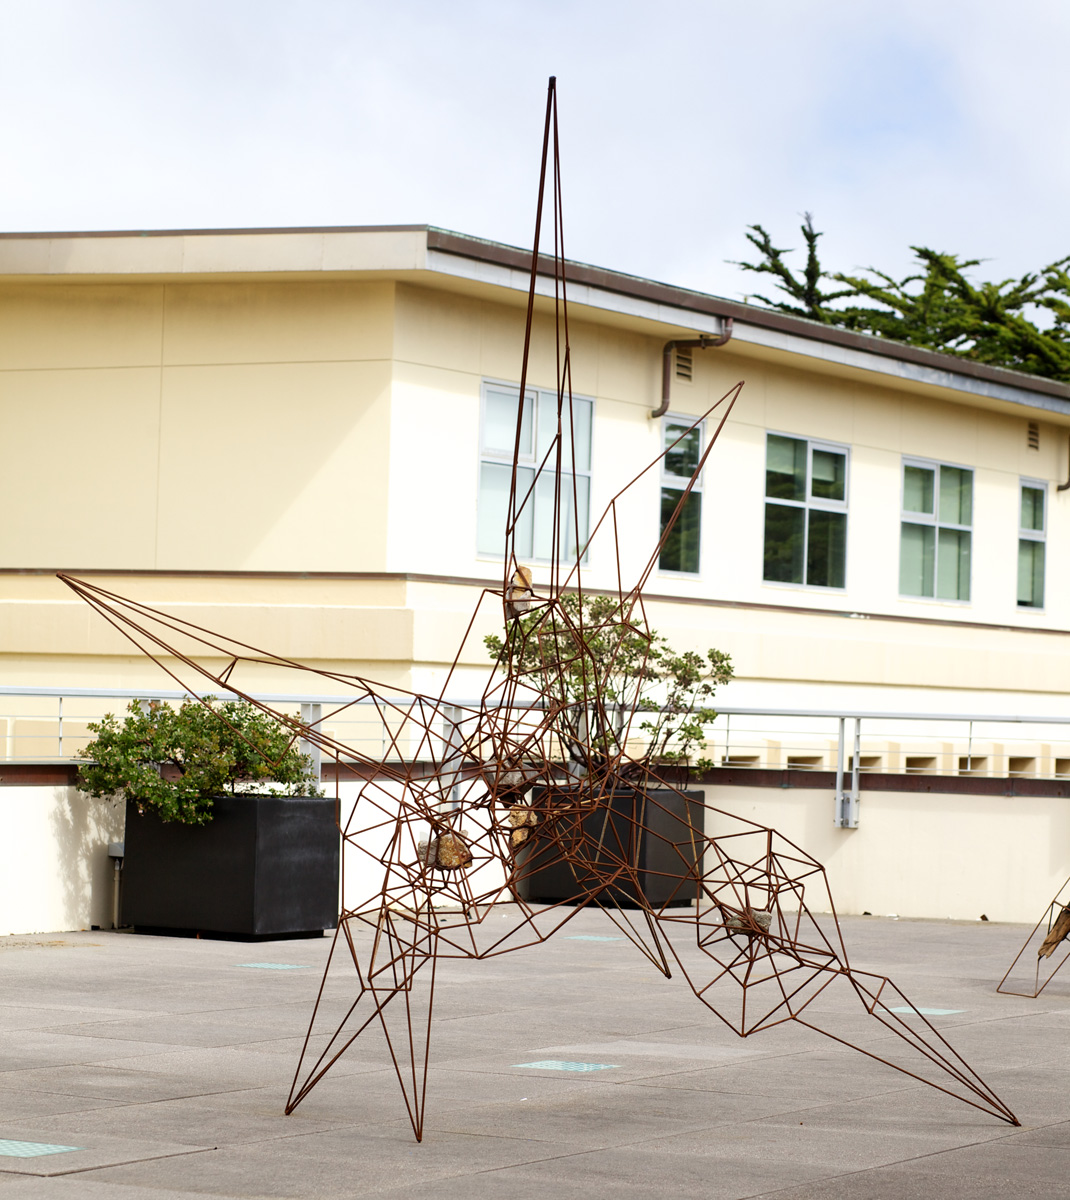 "96"" x 96"" x 84"", 2013 (Installation view at the University of San Francisco Sculpture Terrace.)"